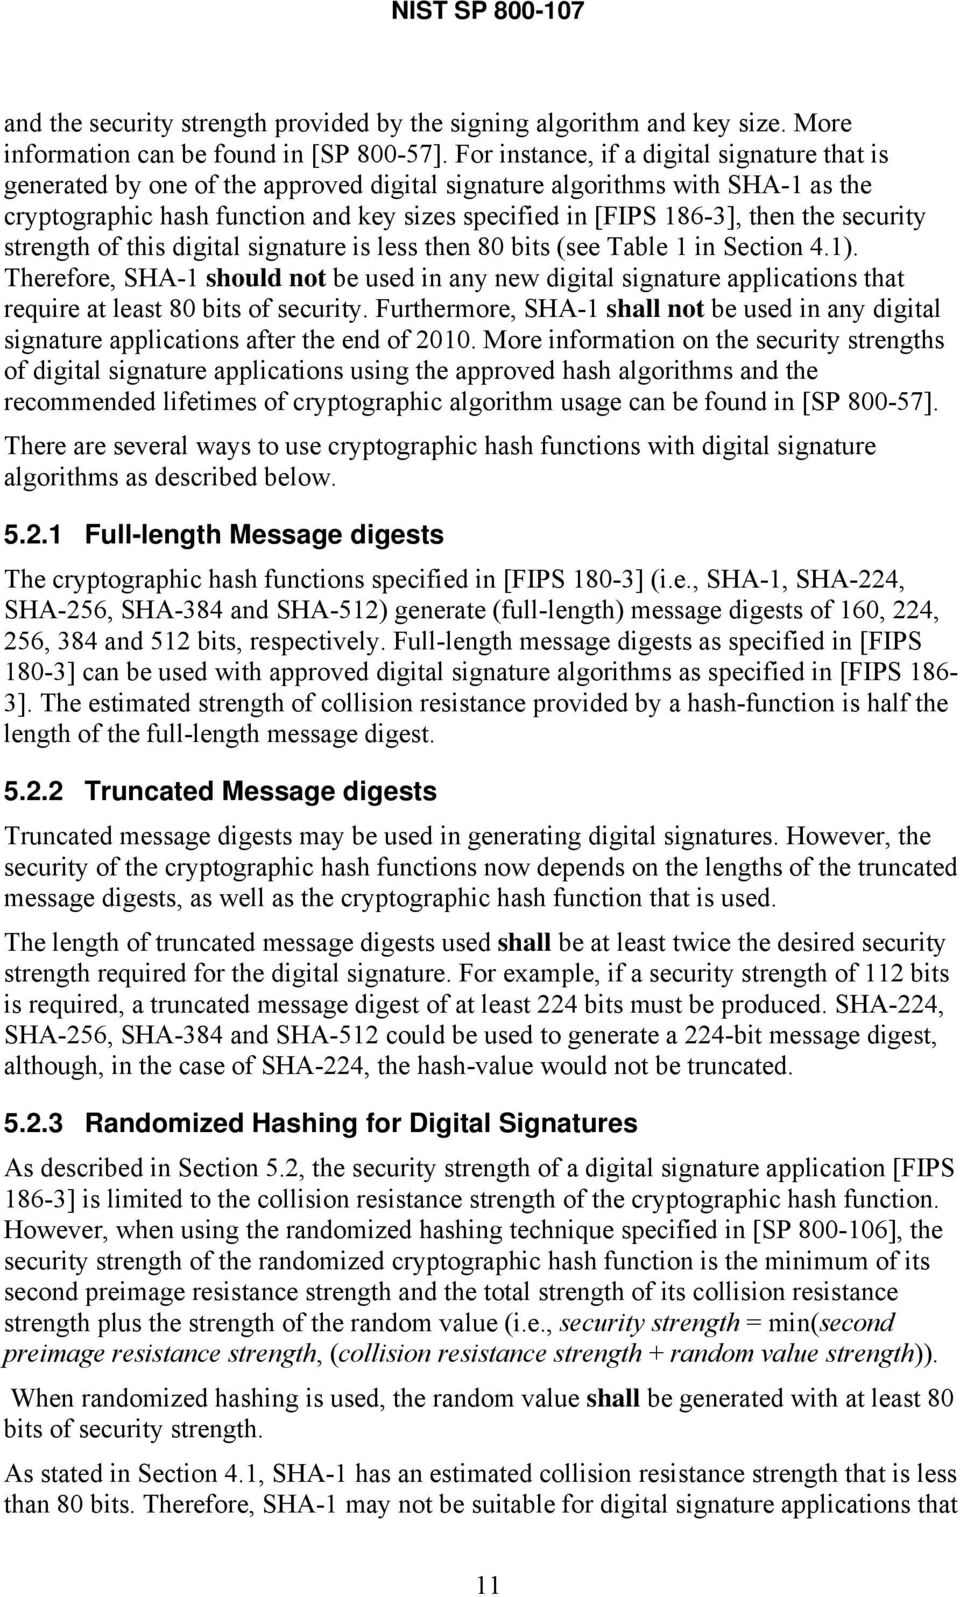 the security strength of this digital signature is less then 80 bits (see Table 1 in Section 4.1).